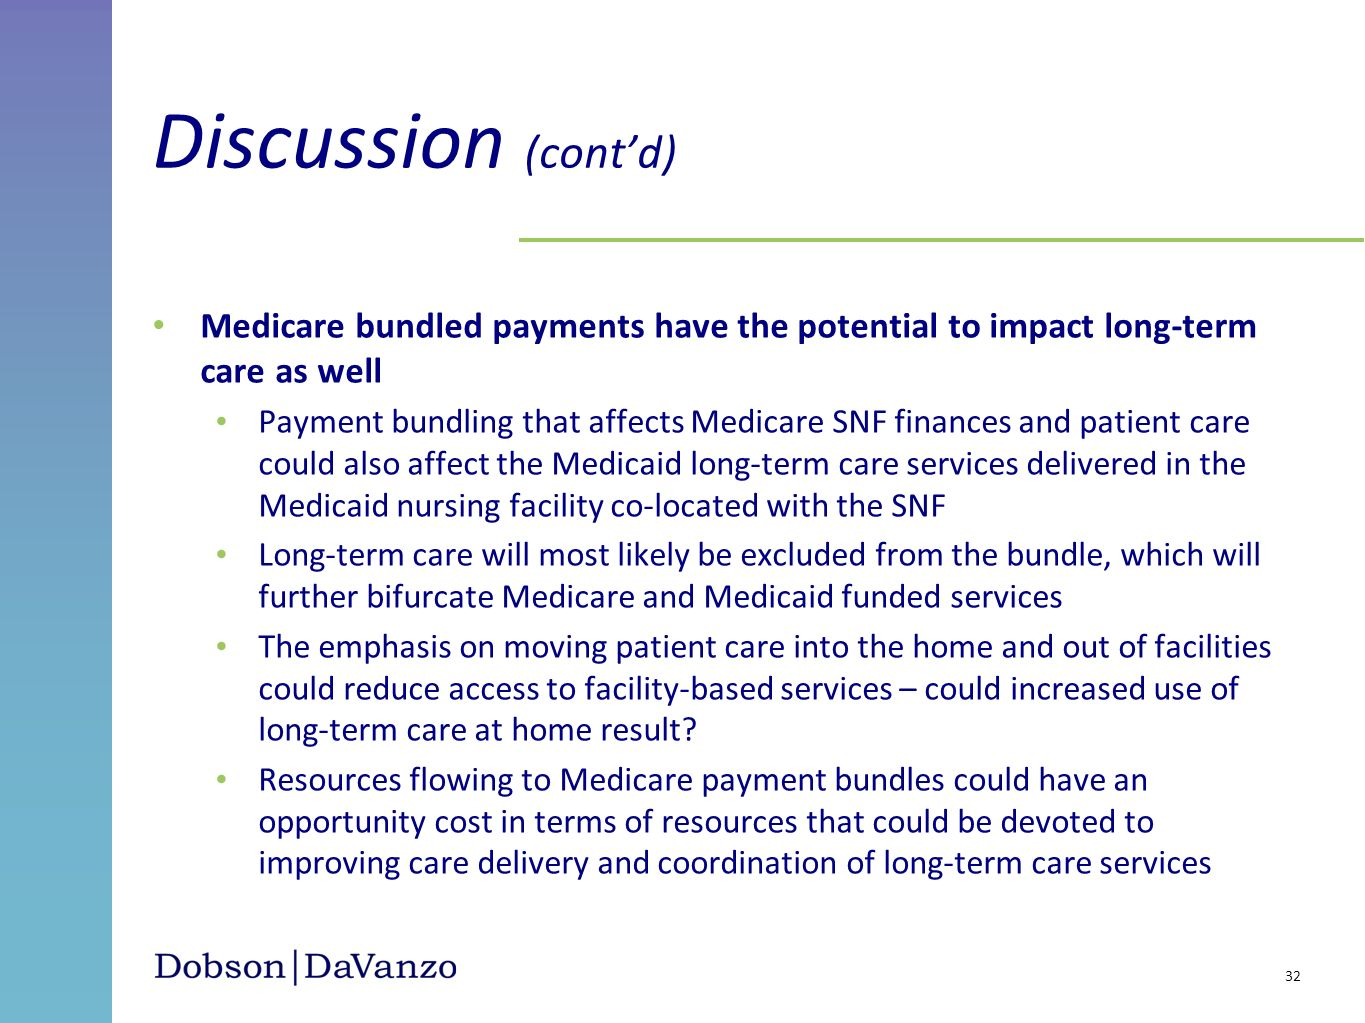 Discussion (cont'd)Medicare bundled payments have the potential to impact long-term care as well.